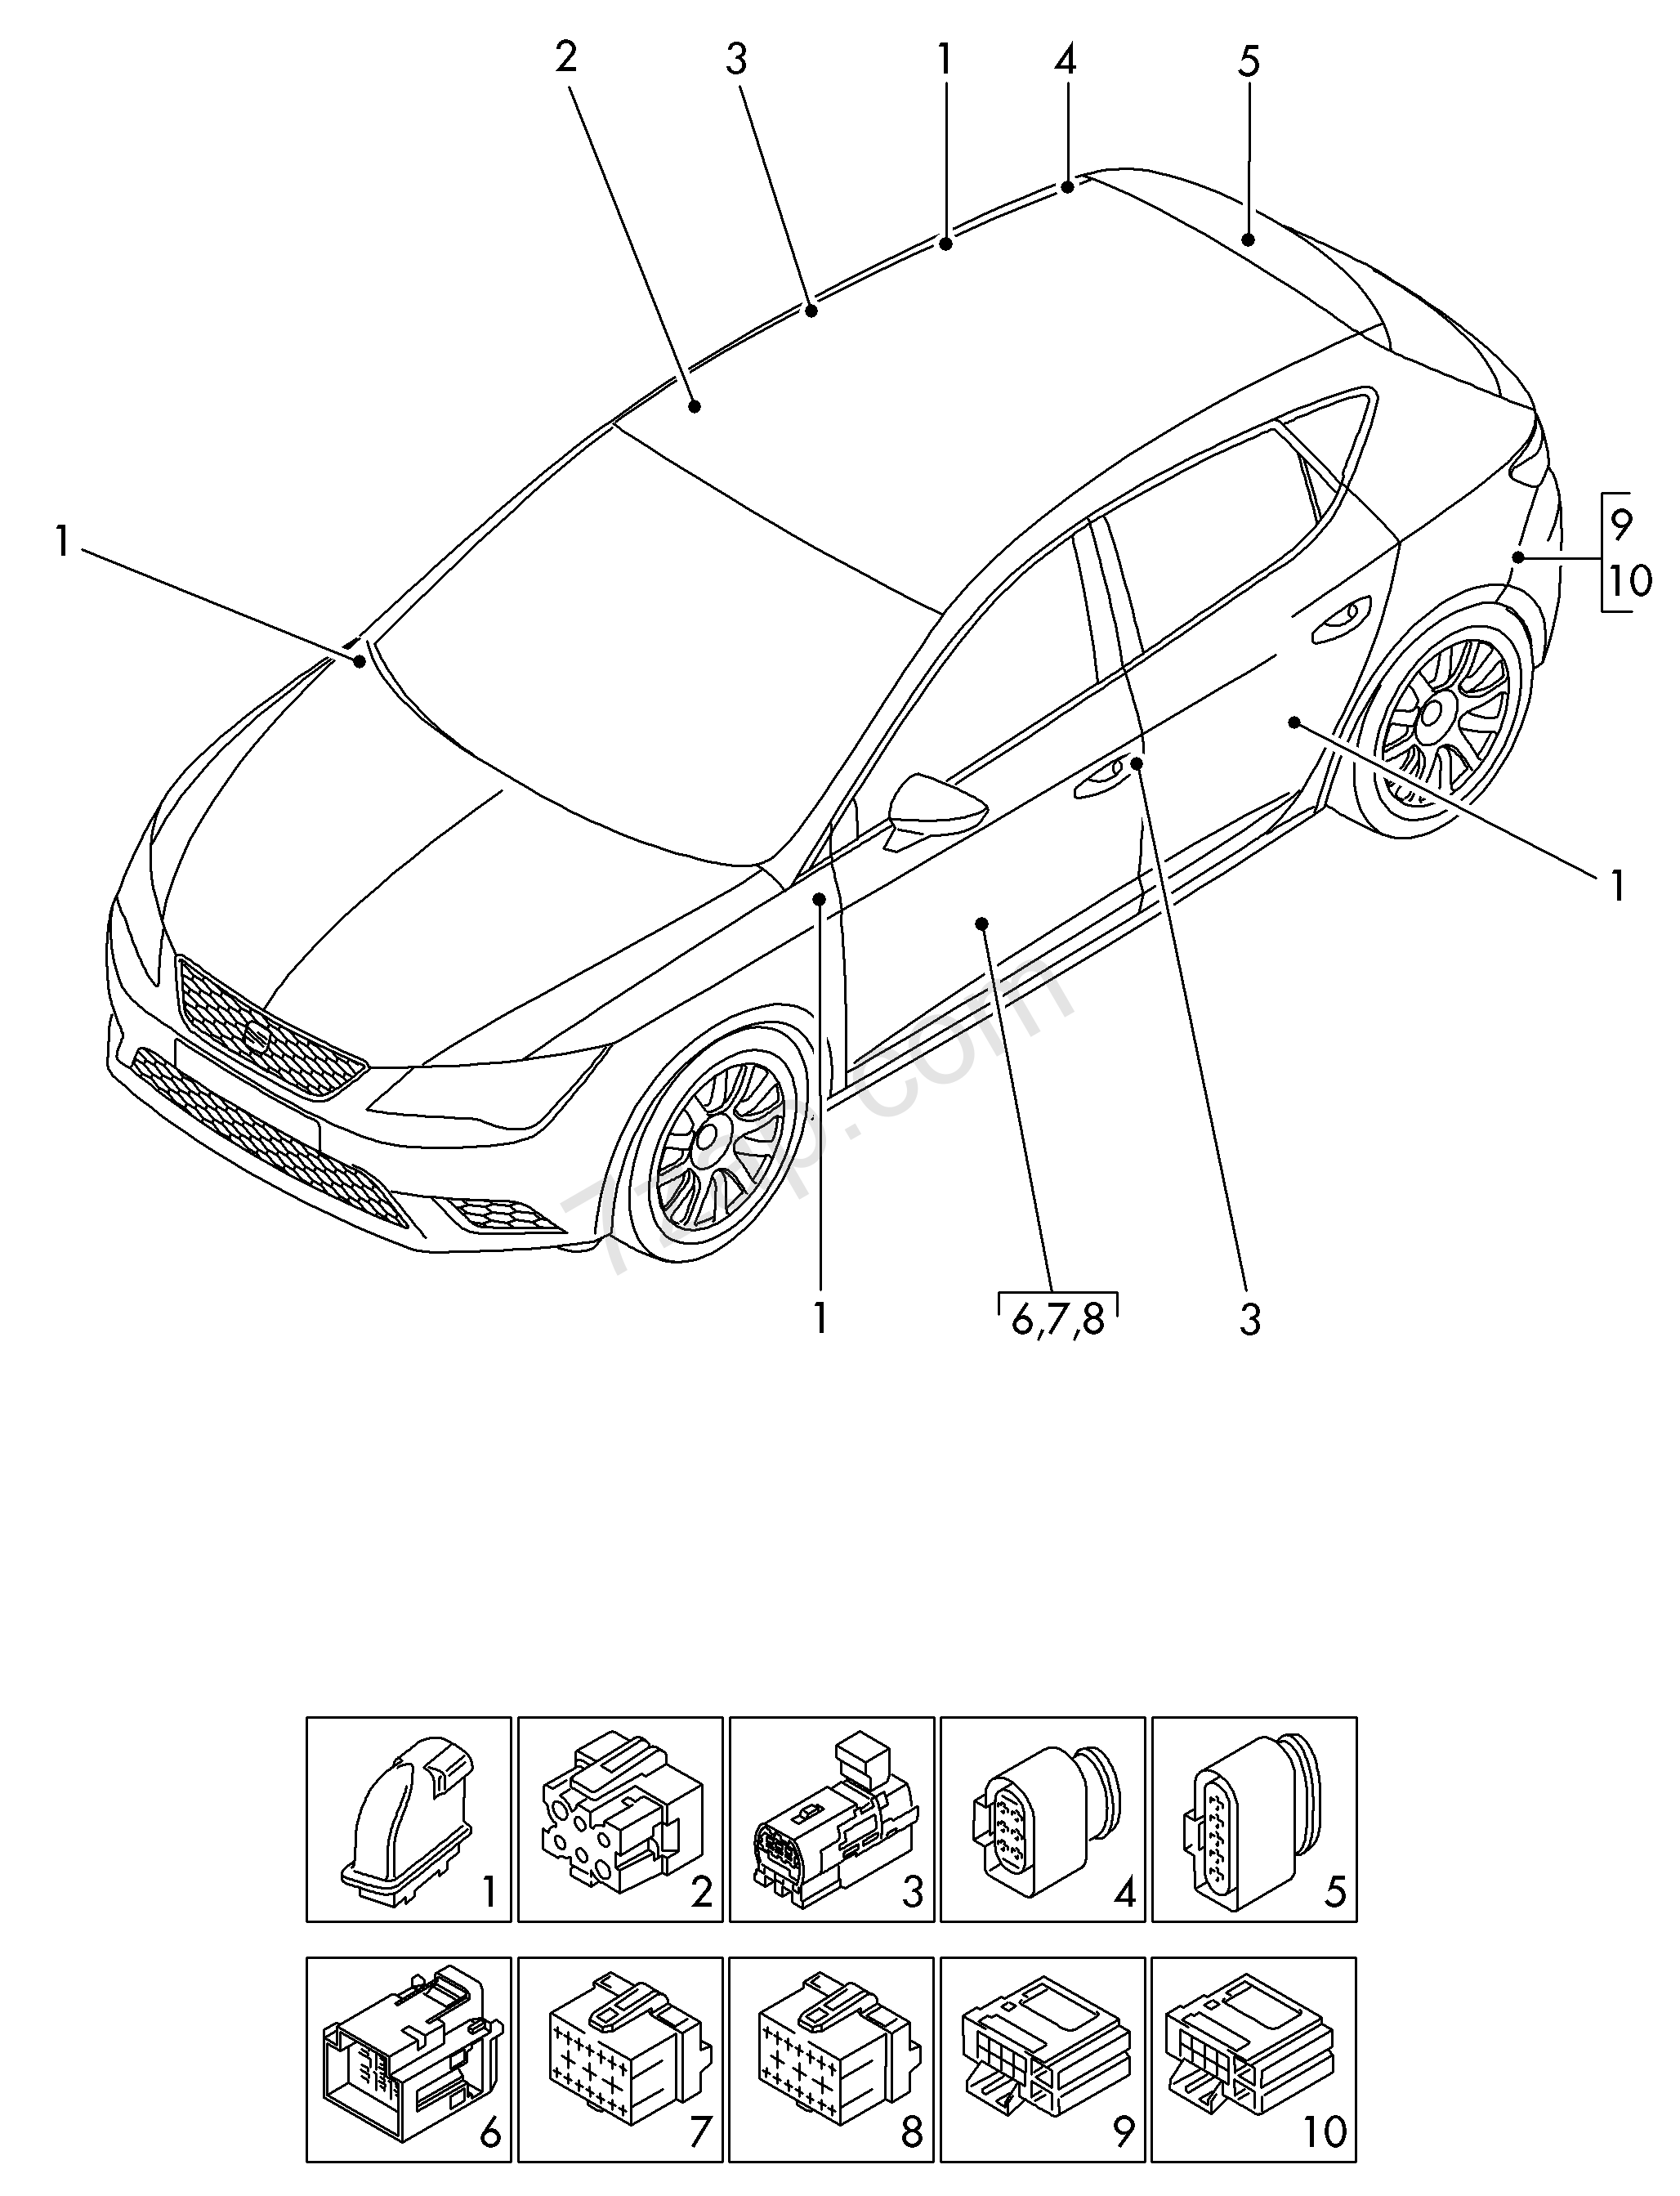 Wiring Chrysler Harness Connectorsecupcm2005. . Wiring Diagram And